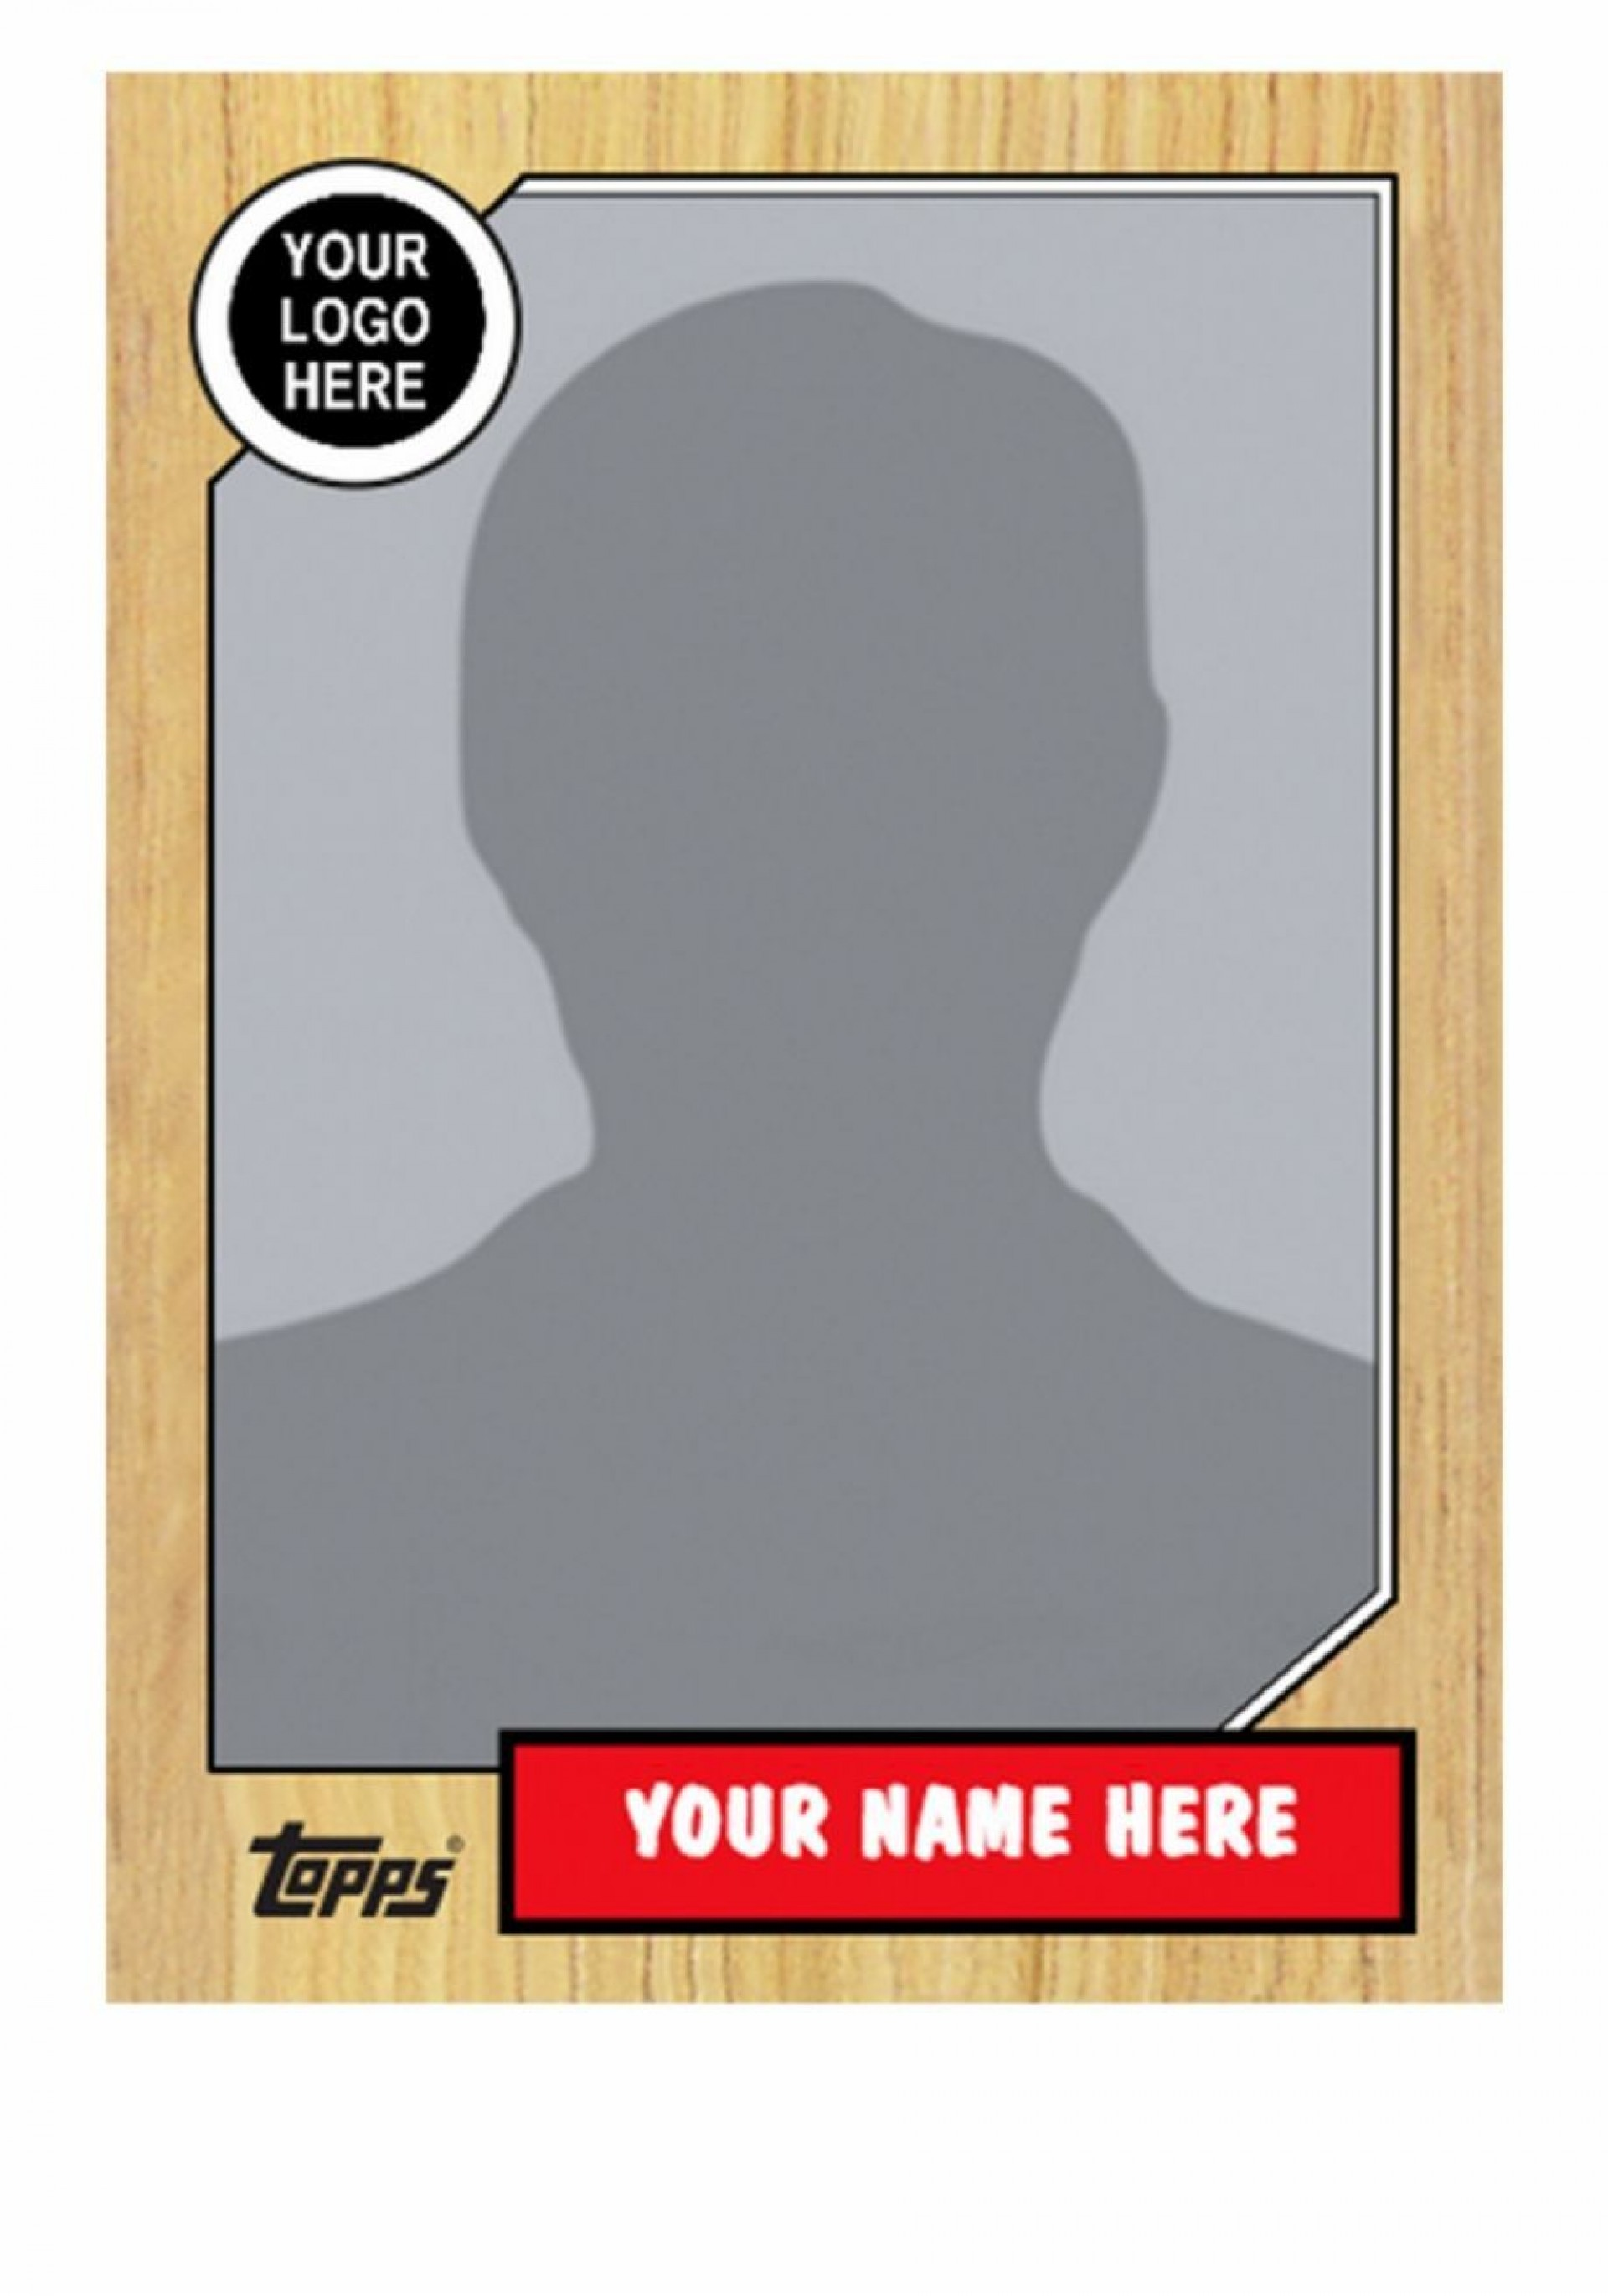 002 Unbelievable Baseball Card Template Photoshop Picture  Topp Free1920